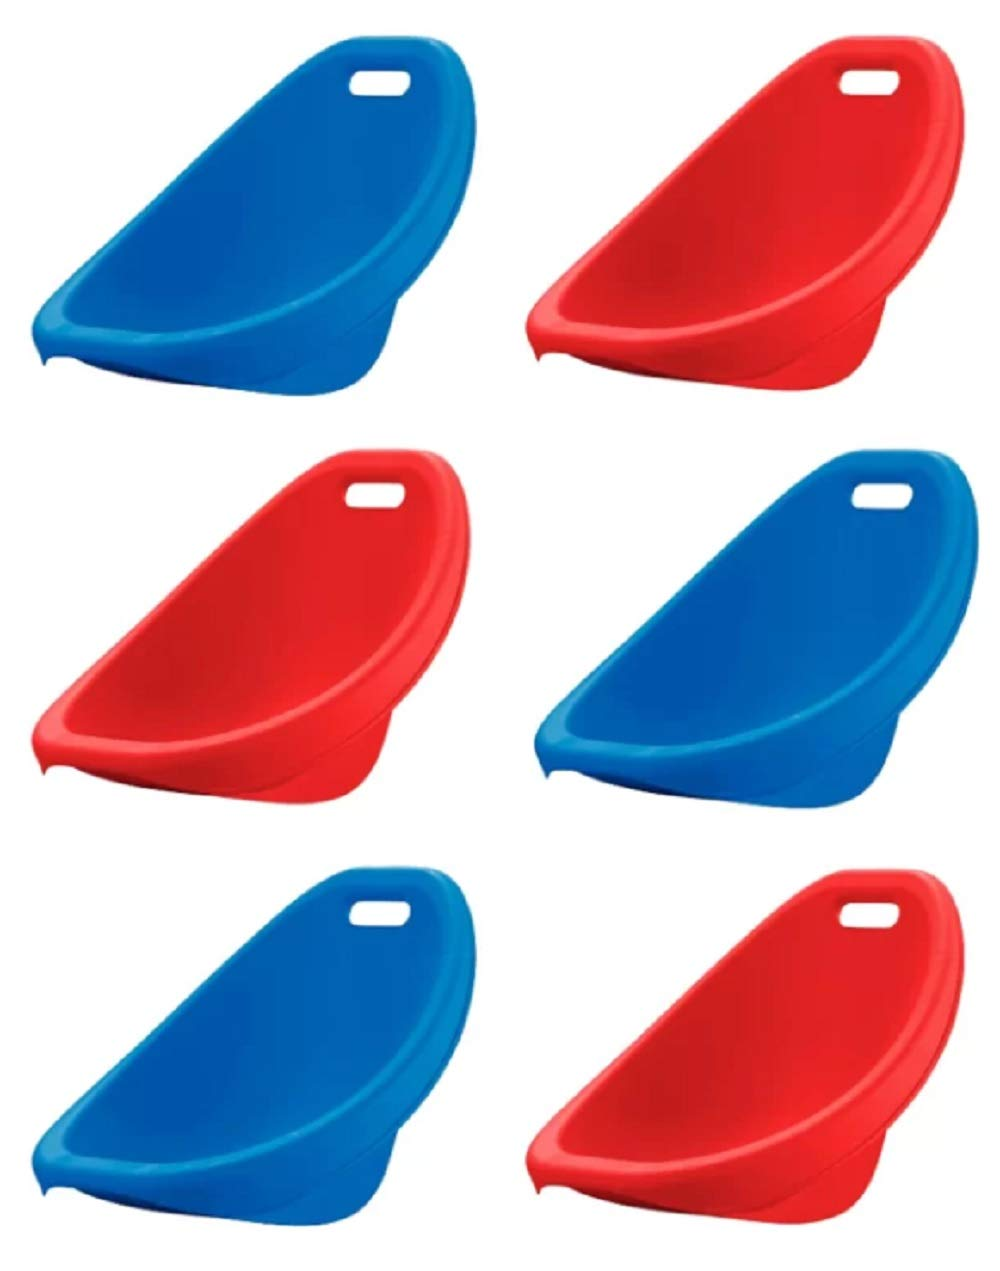 American Plastic Toys Kids Scoop Rocker Chairs in Assorted Colors [Blue, Red, etc.] Stackable, 50 lb. Weight Capacity (Pack of 6), Great for Gaming, Reading, Playroom, School, Classroom Children by American Plastic Toys Inc